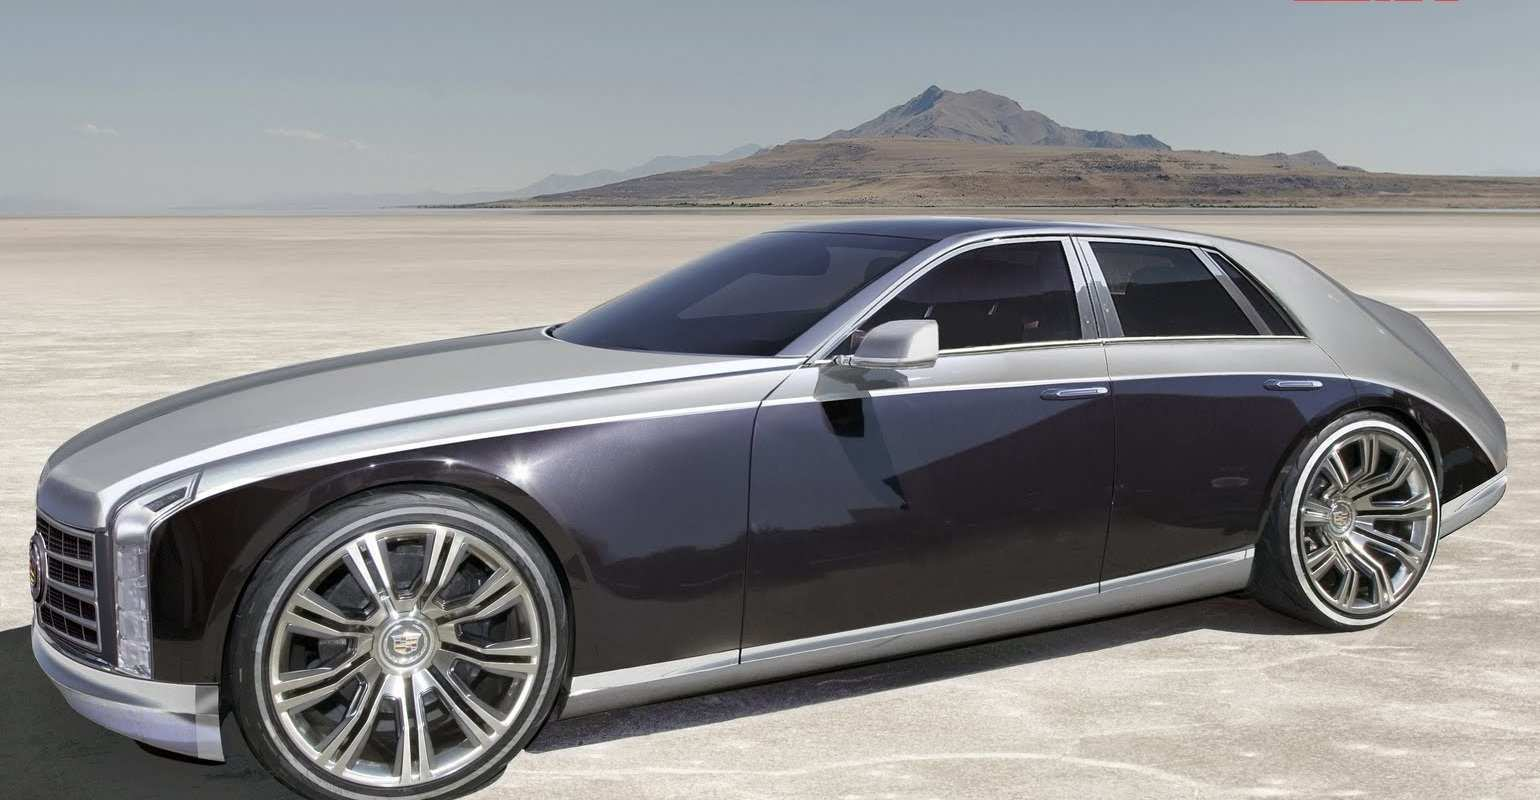 43 The Best 2020 Cadillac Dts Pricing